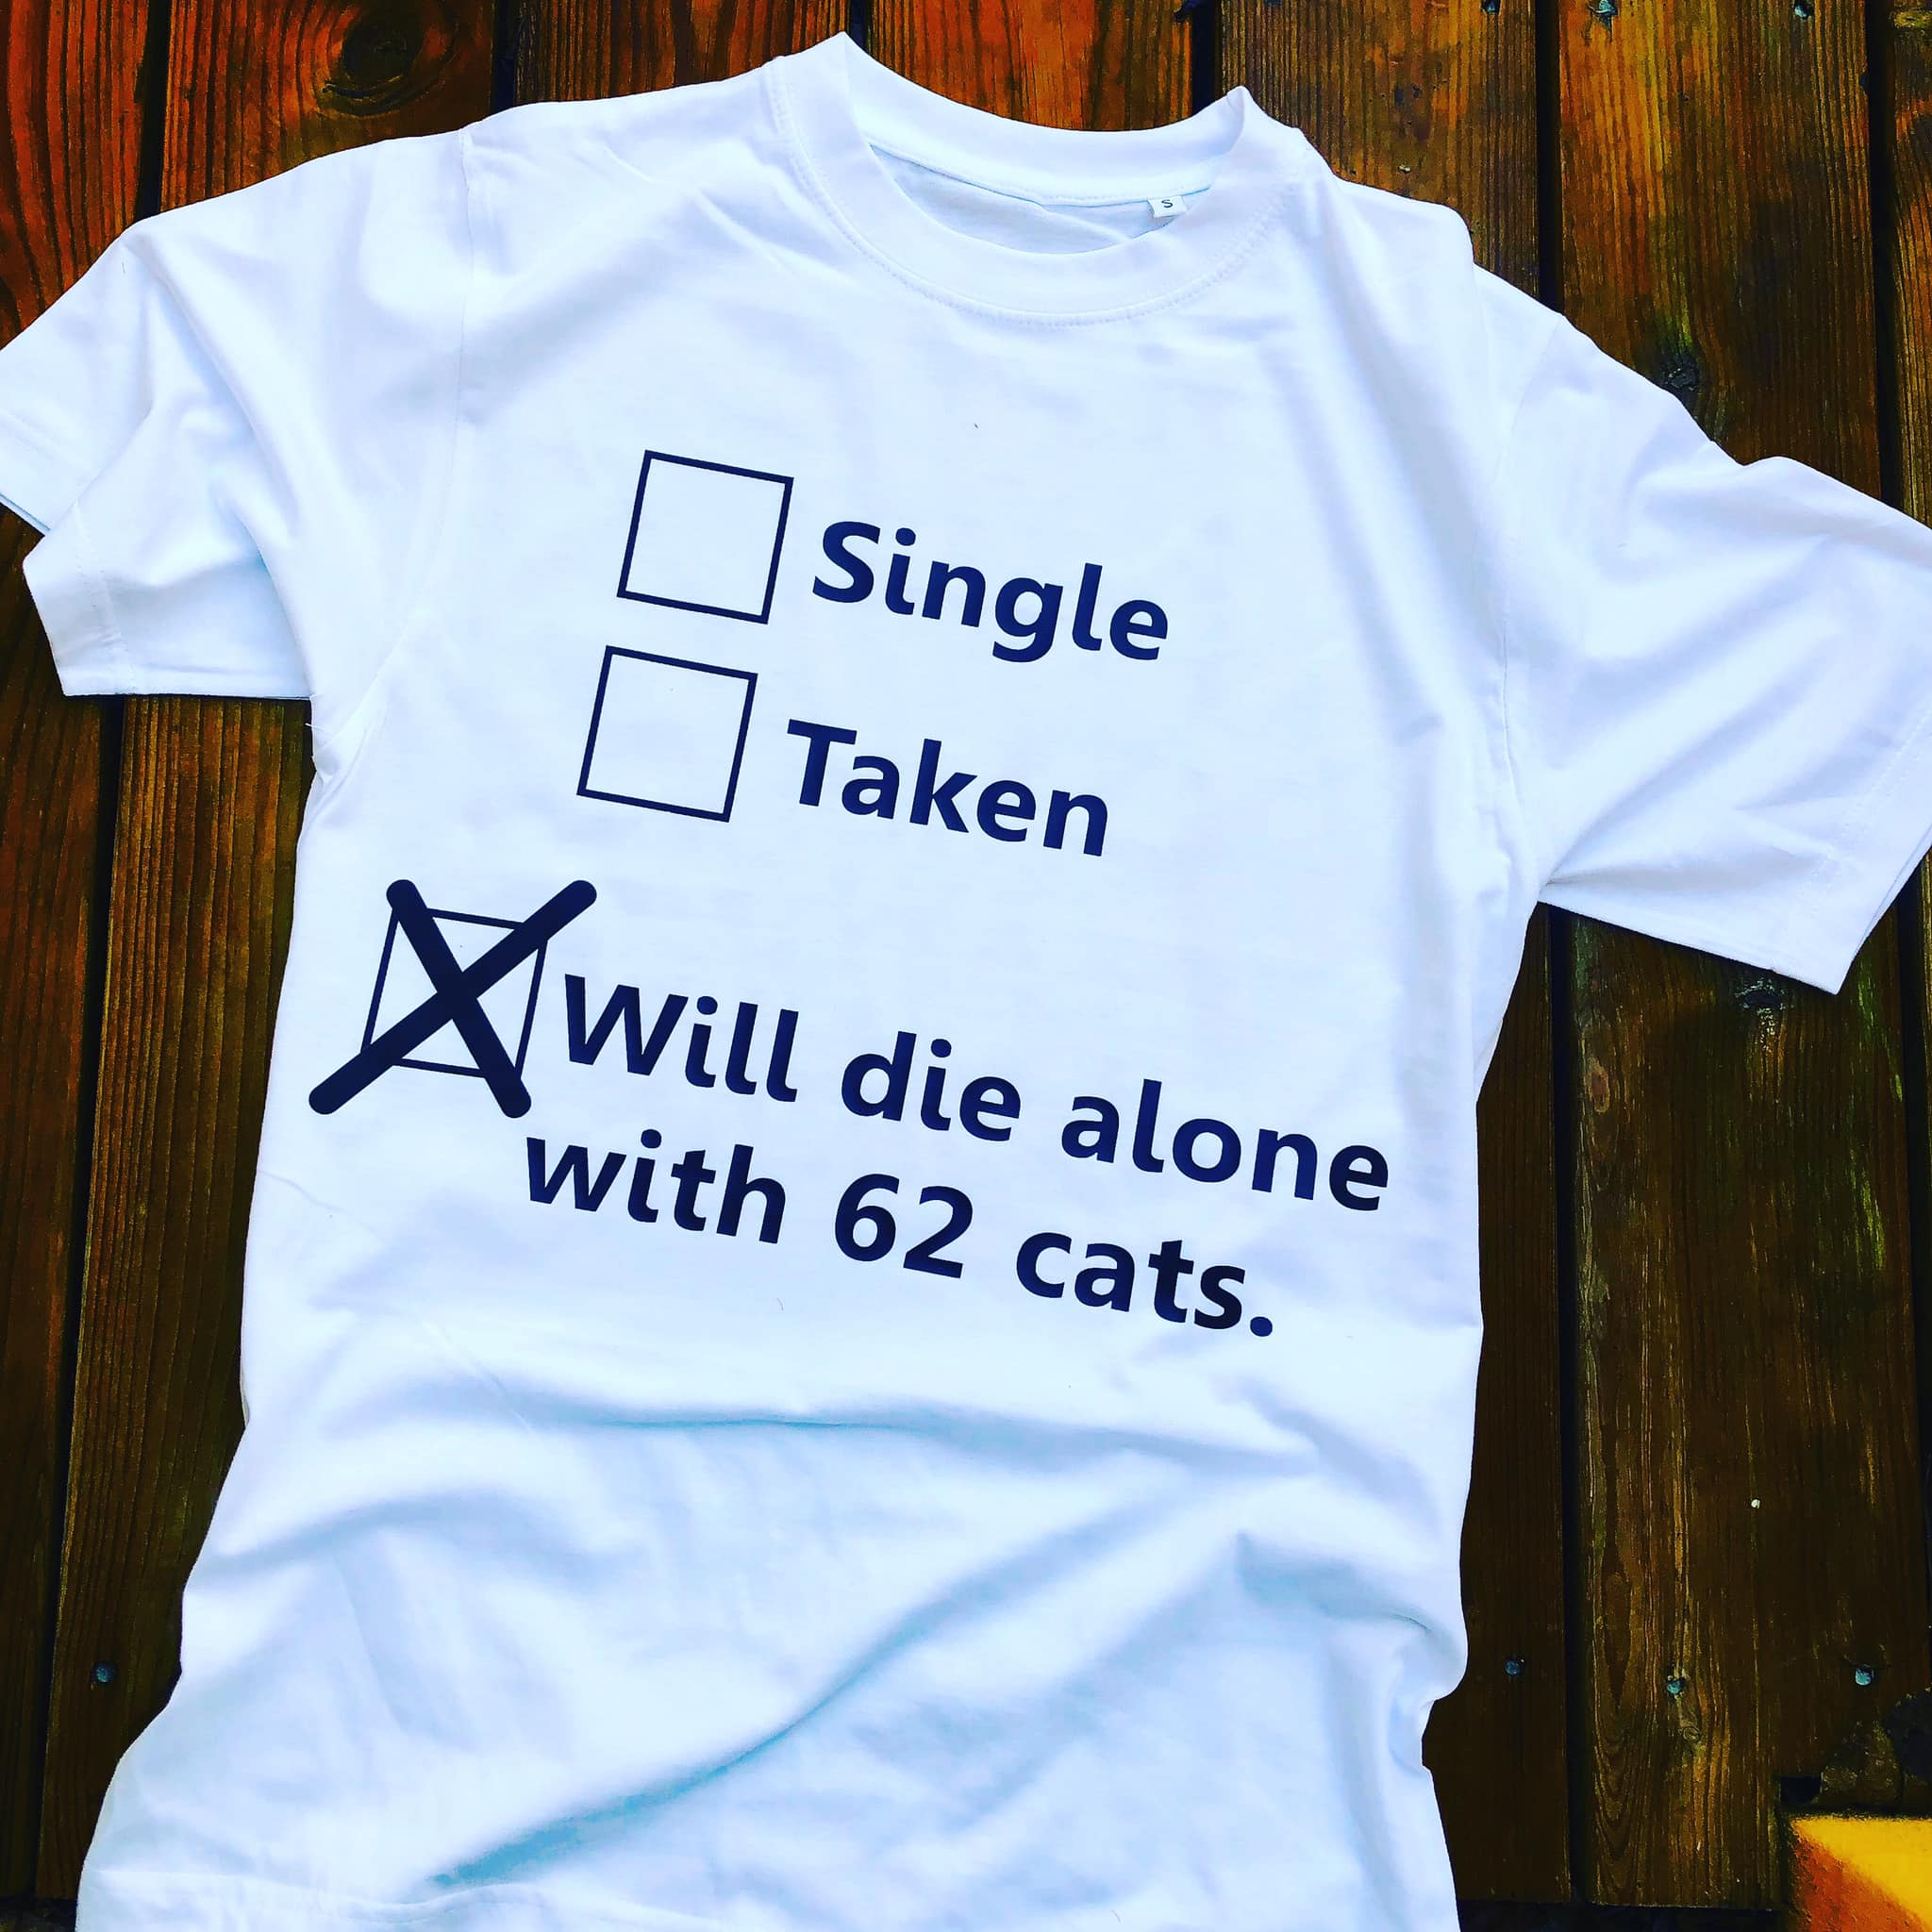 Single taken will die alone with 62 cats shirt